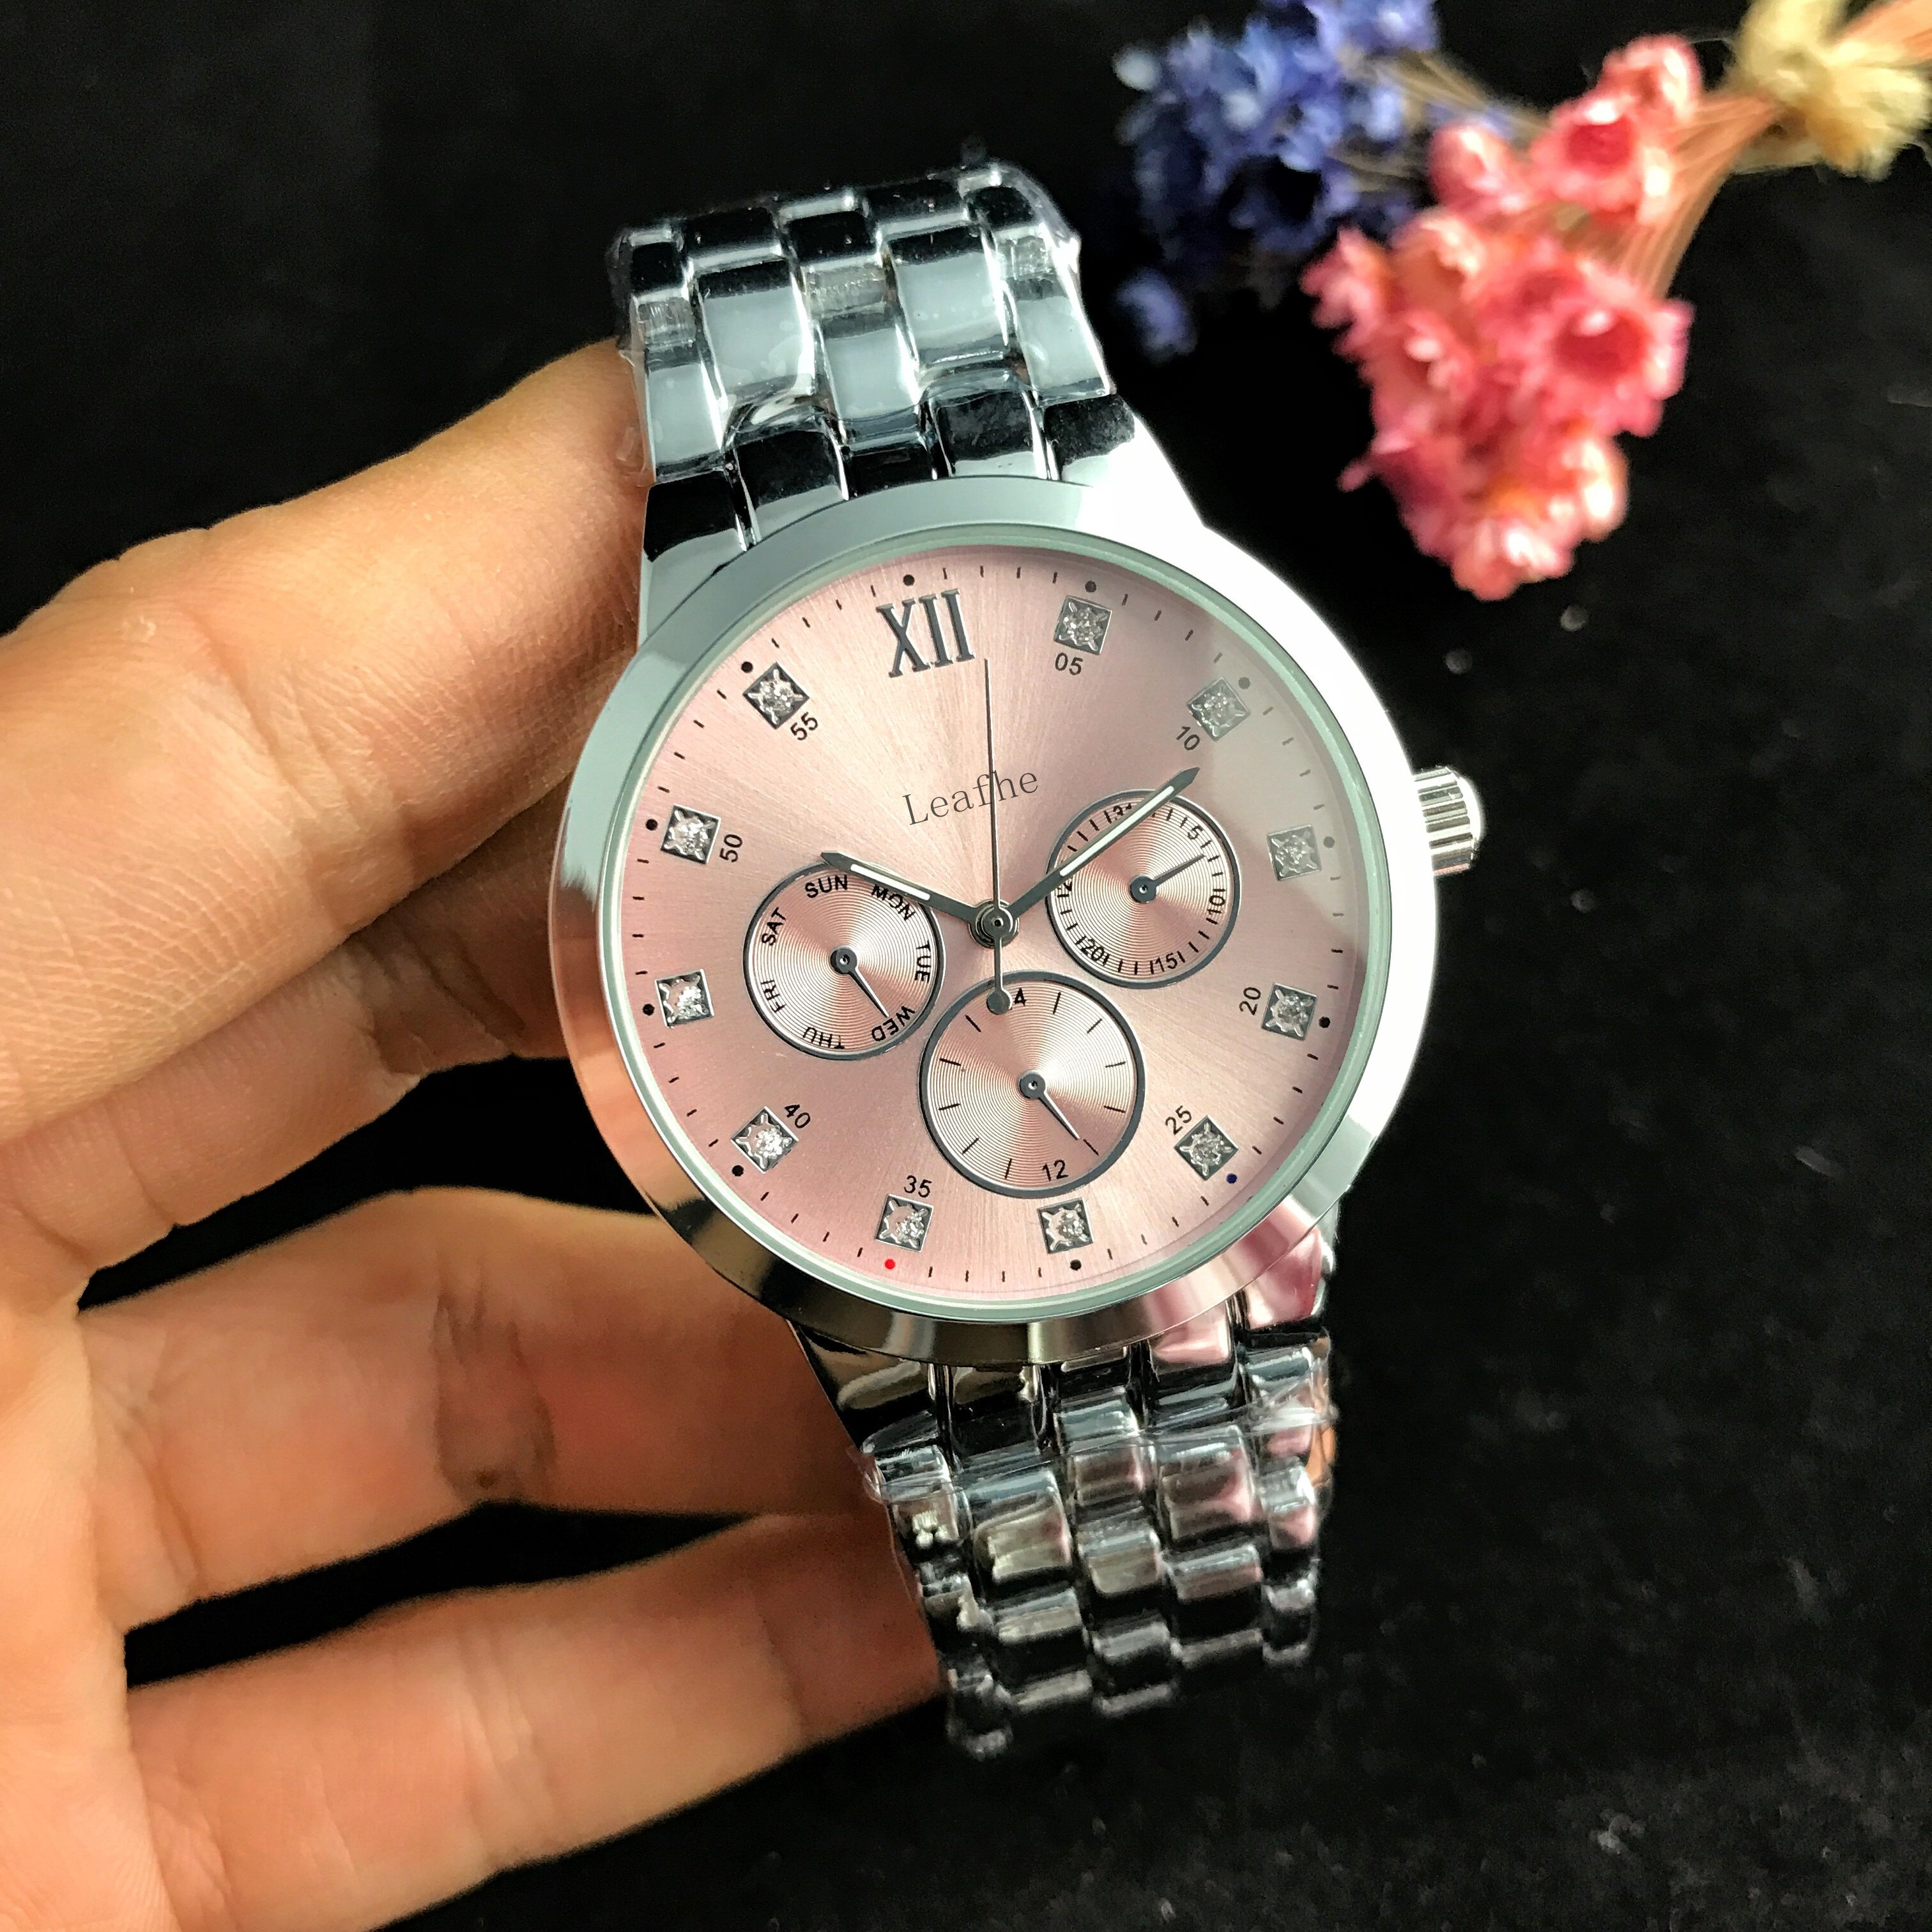 Fashion Diamond Quartz Watch Butterfly Clasp Stainless Steel Strap Women's Watches Black Clock First Choice Gift montre femme enlarge